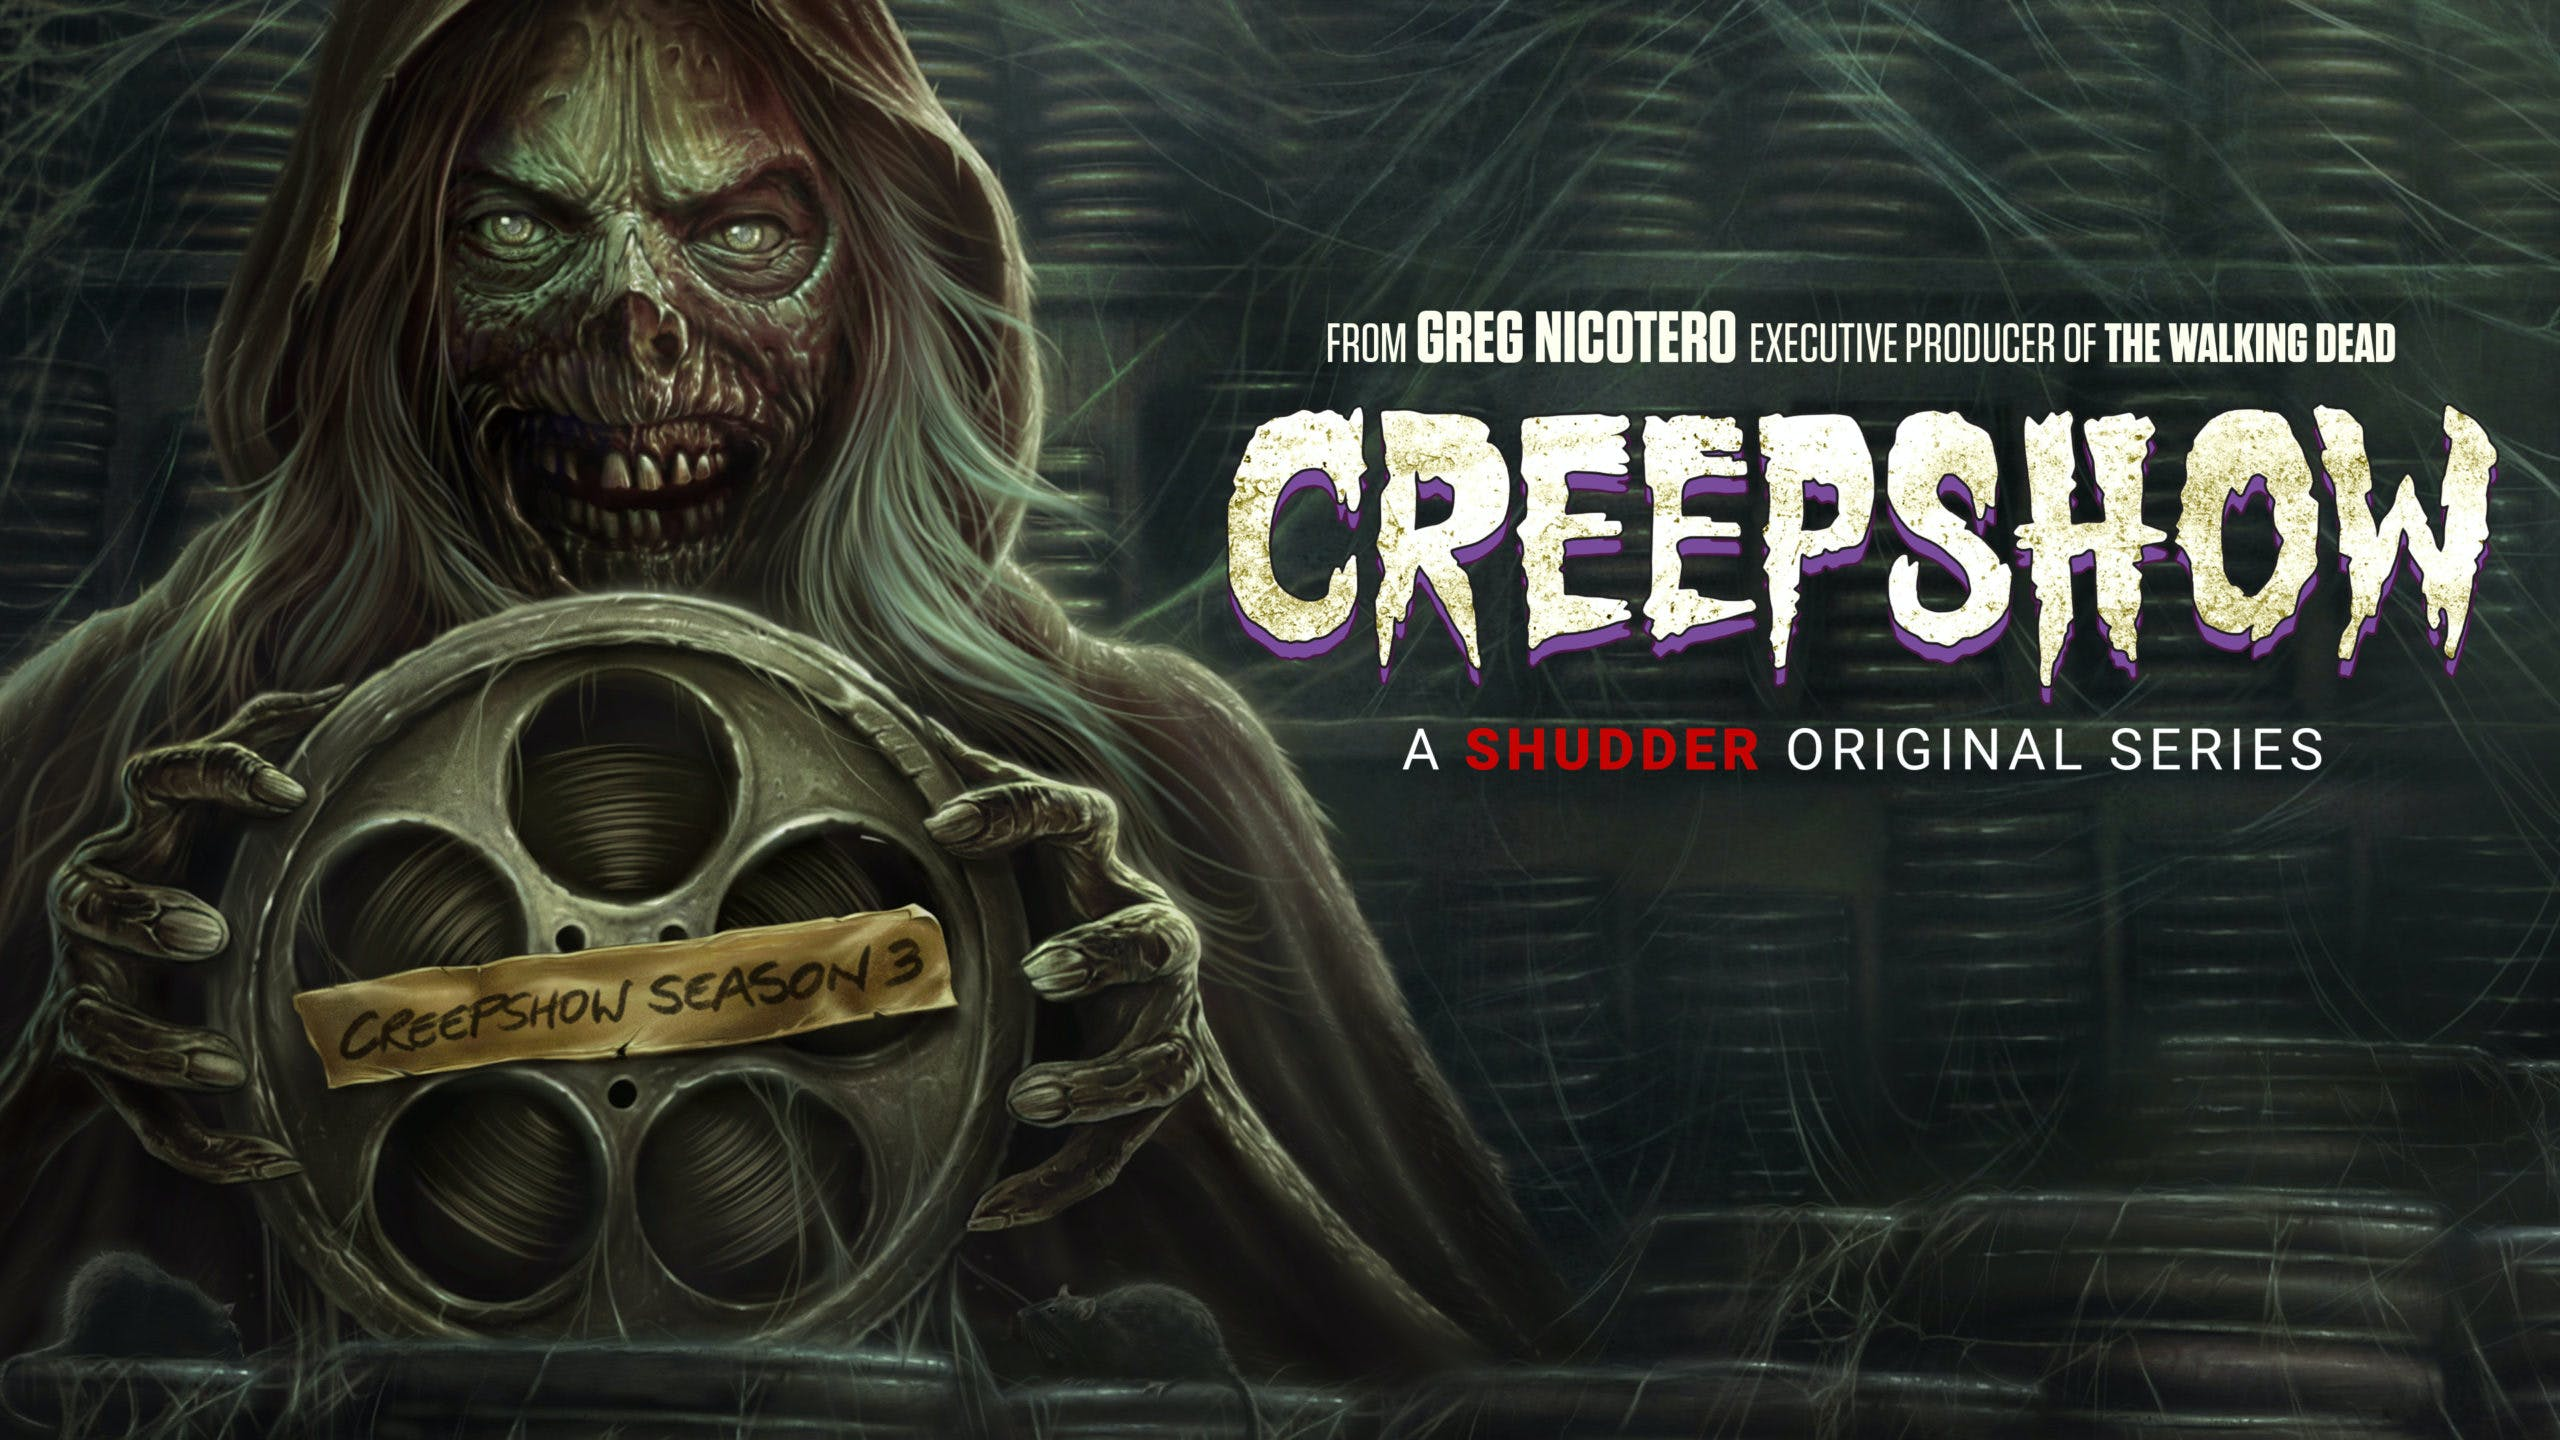 Creepshow S3 Giveaway Official Rules